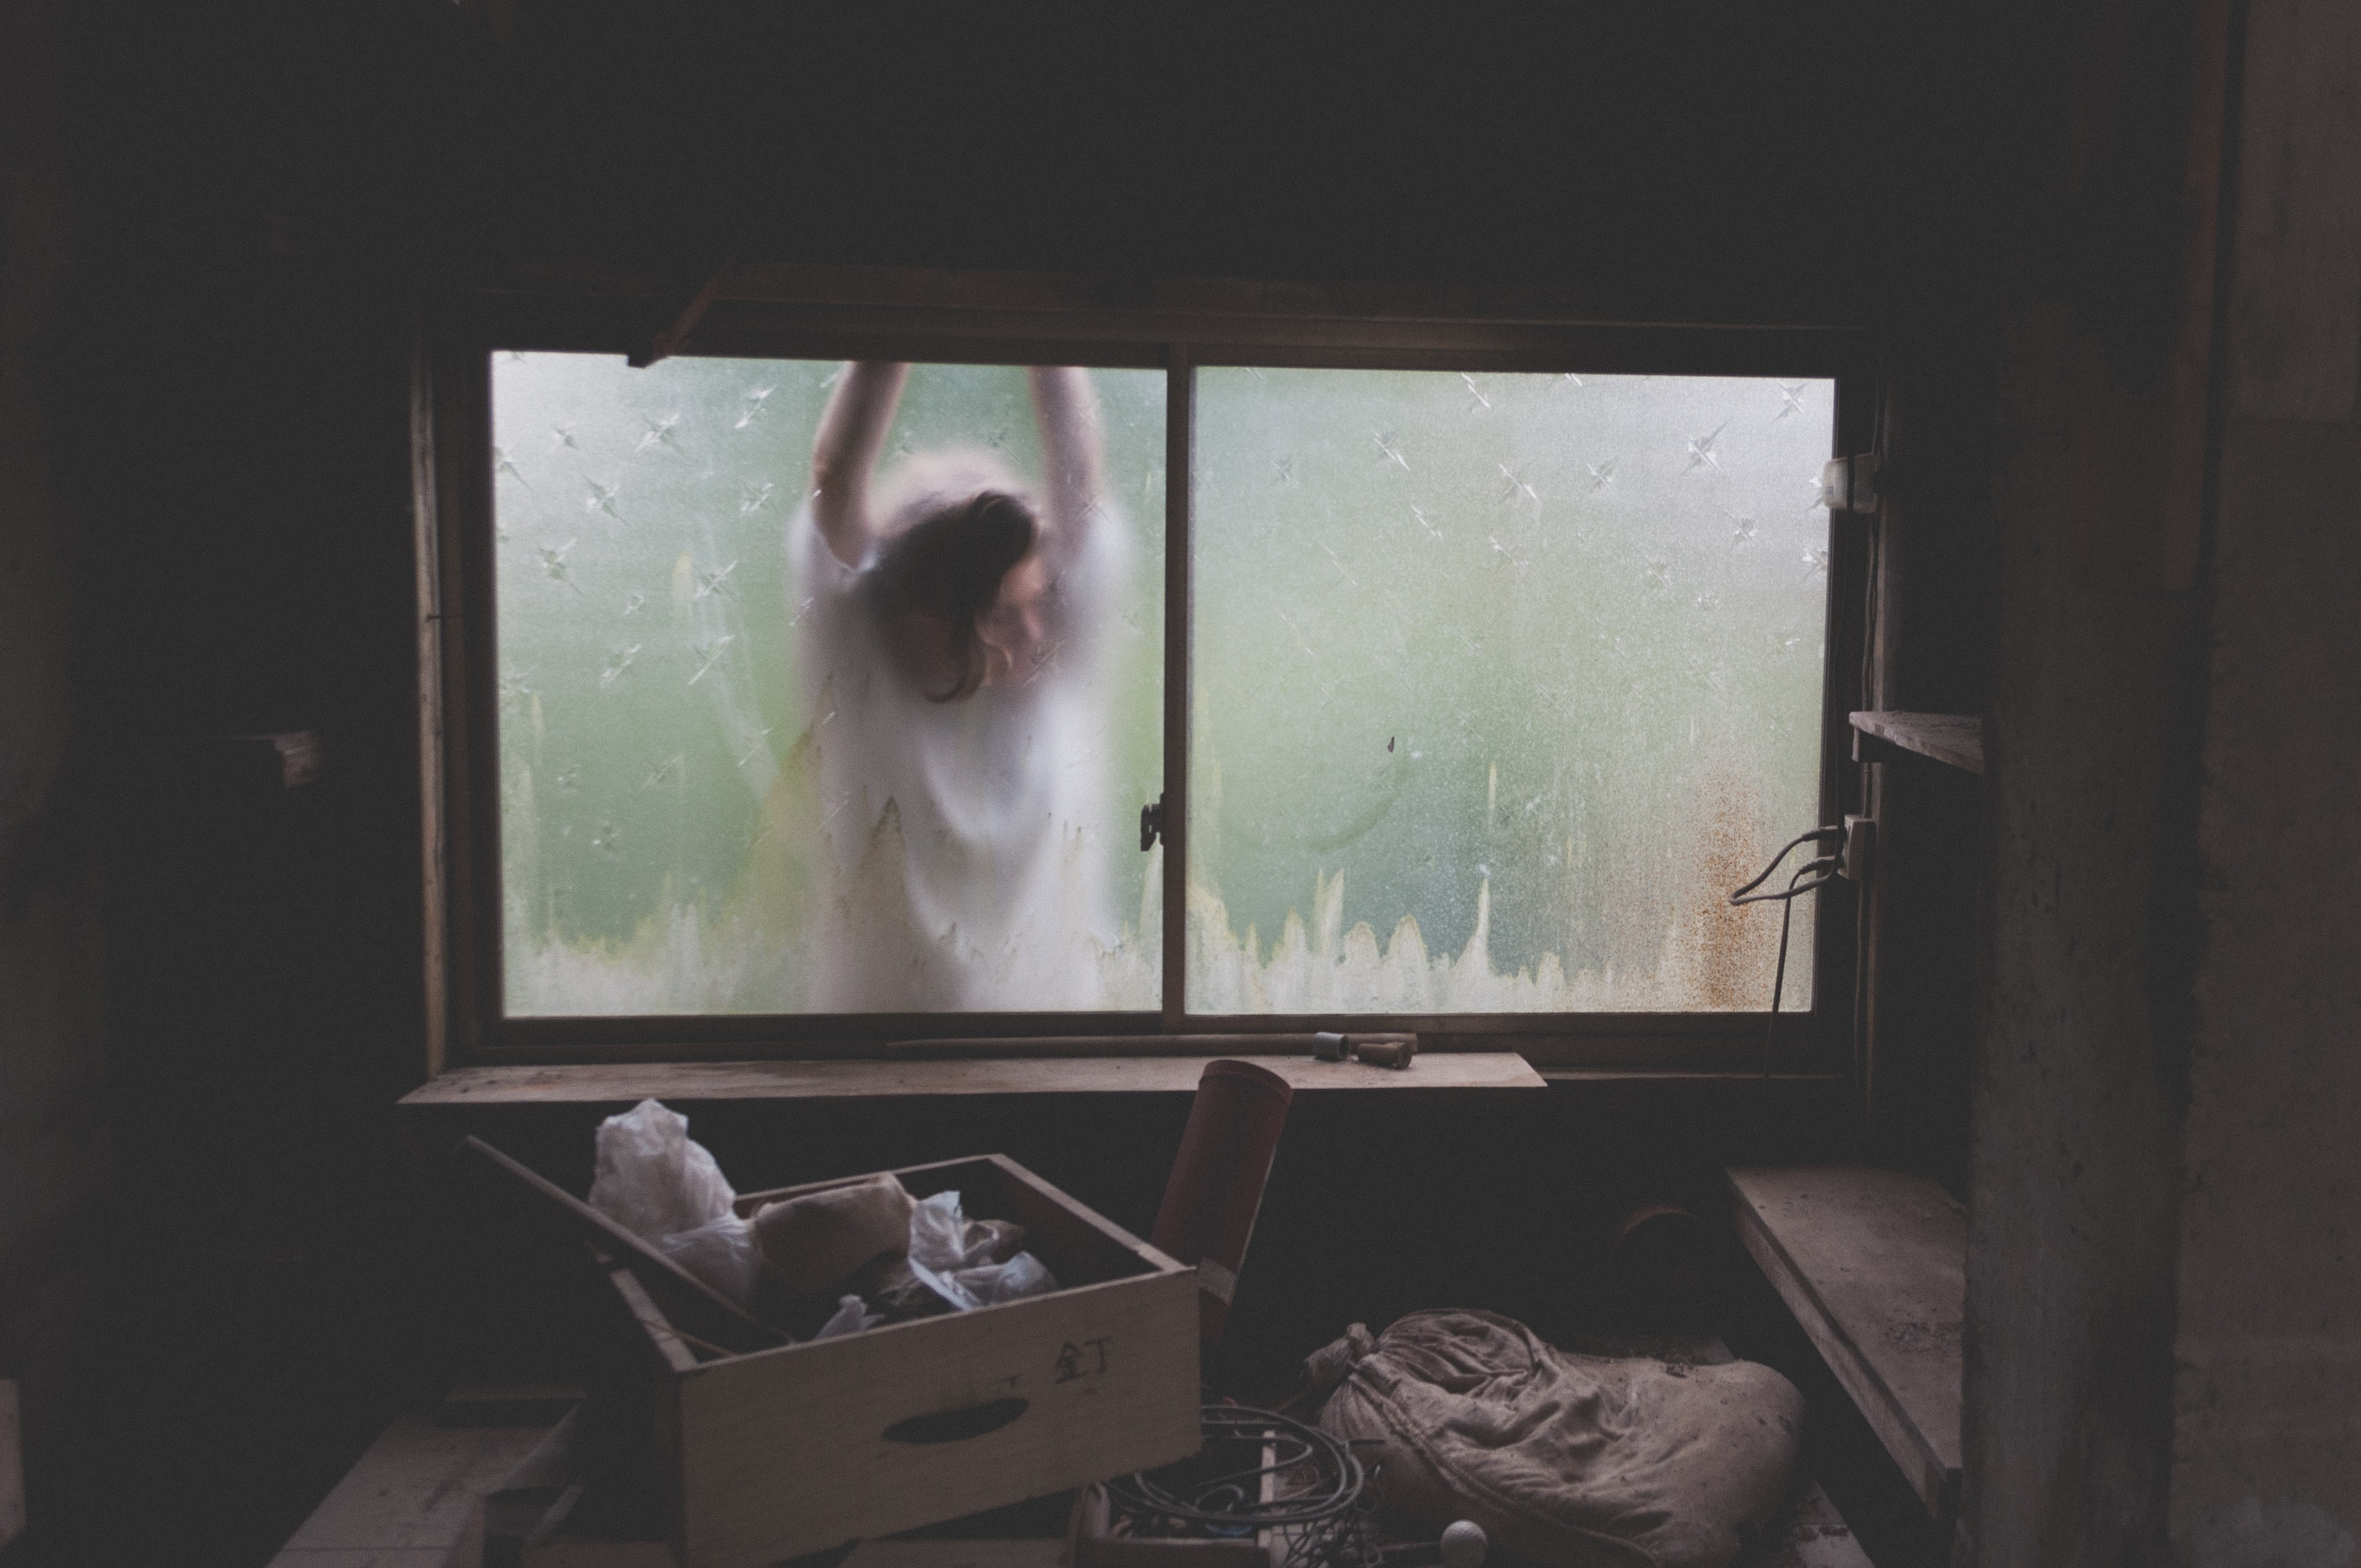 A spooky shot of a helpless looking woman clawing at a window from the outside, with the interior of the room covered in boxes